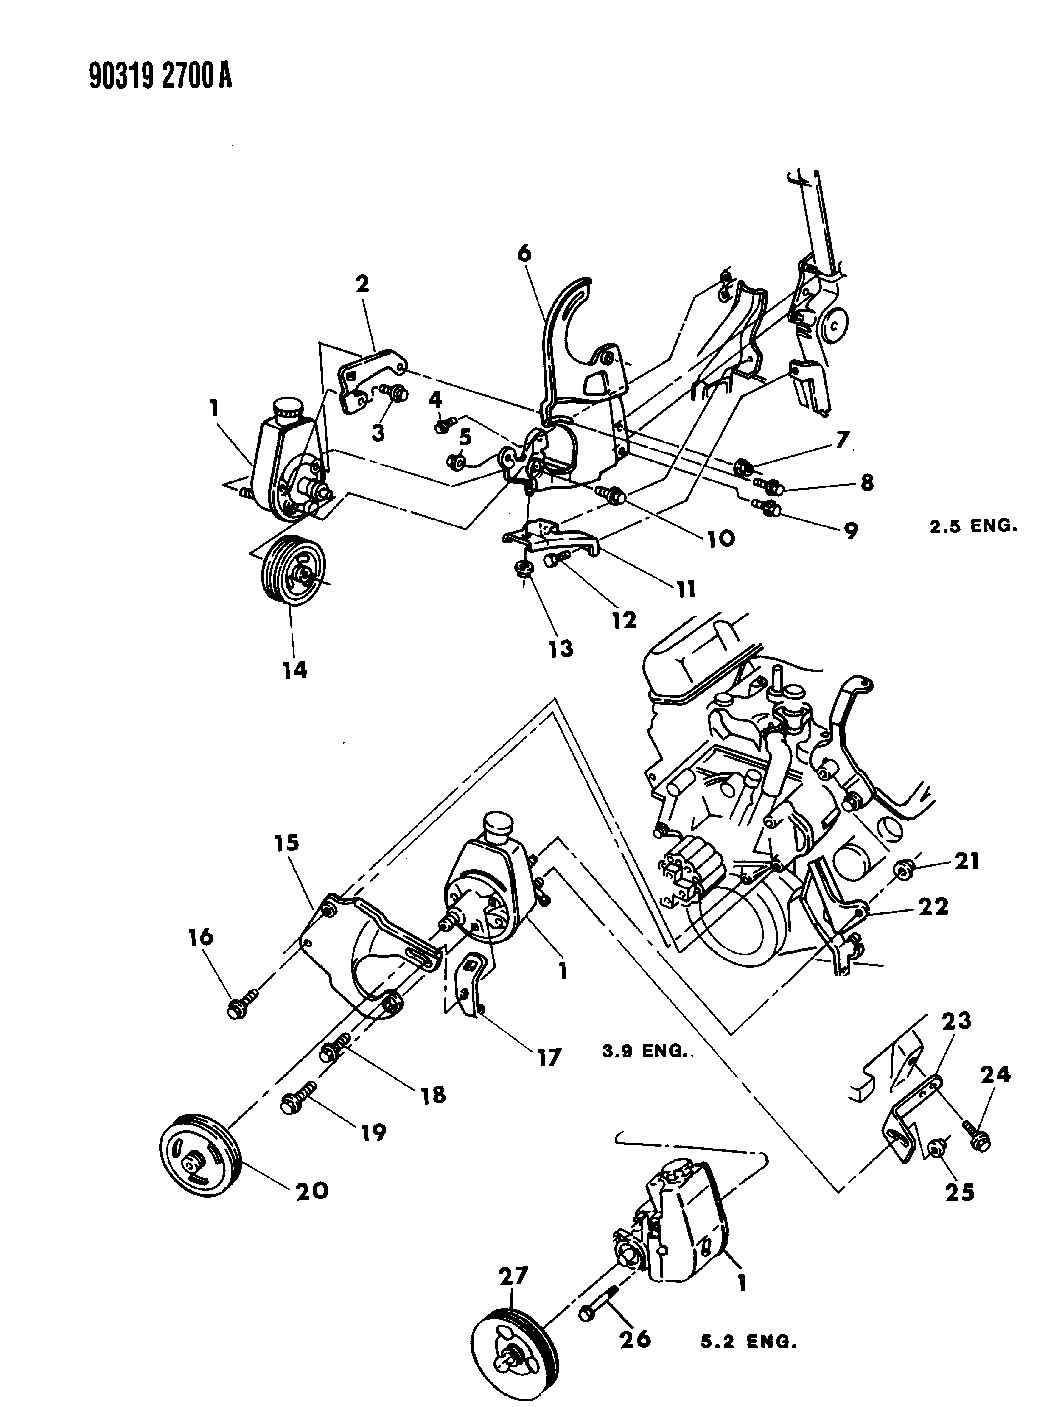 1990 Dodge Dakota Steering Diagram Trusted Wiring Diagrams 1995 Intrepid Similiar Keywords 2005